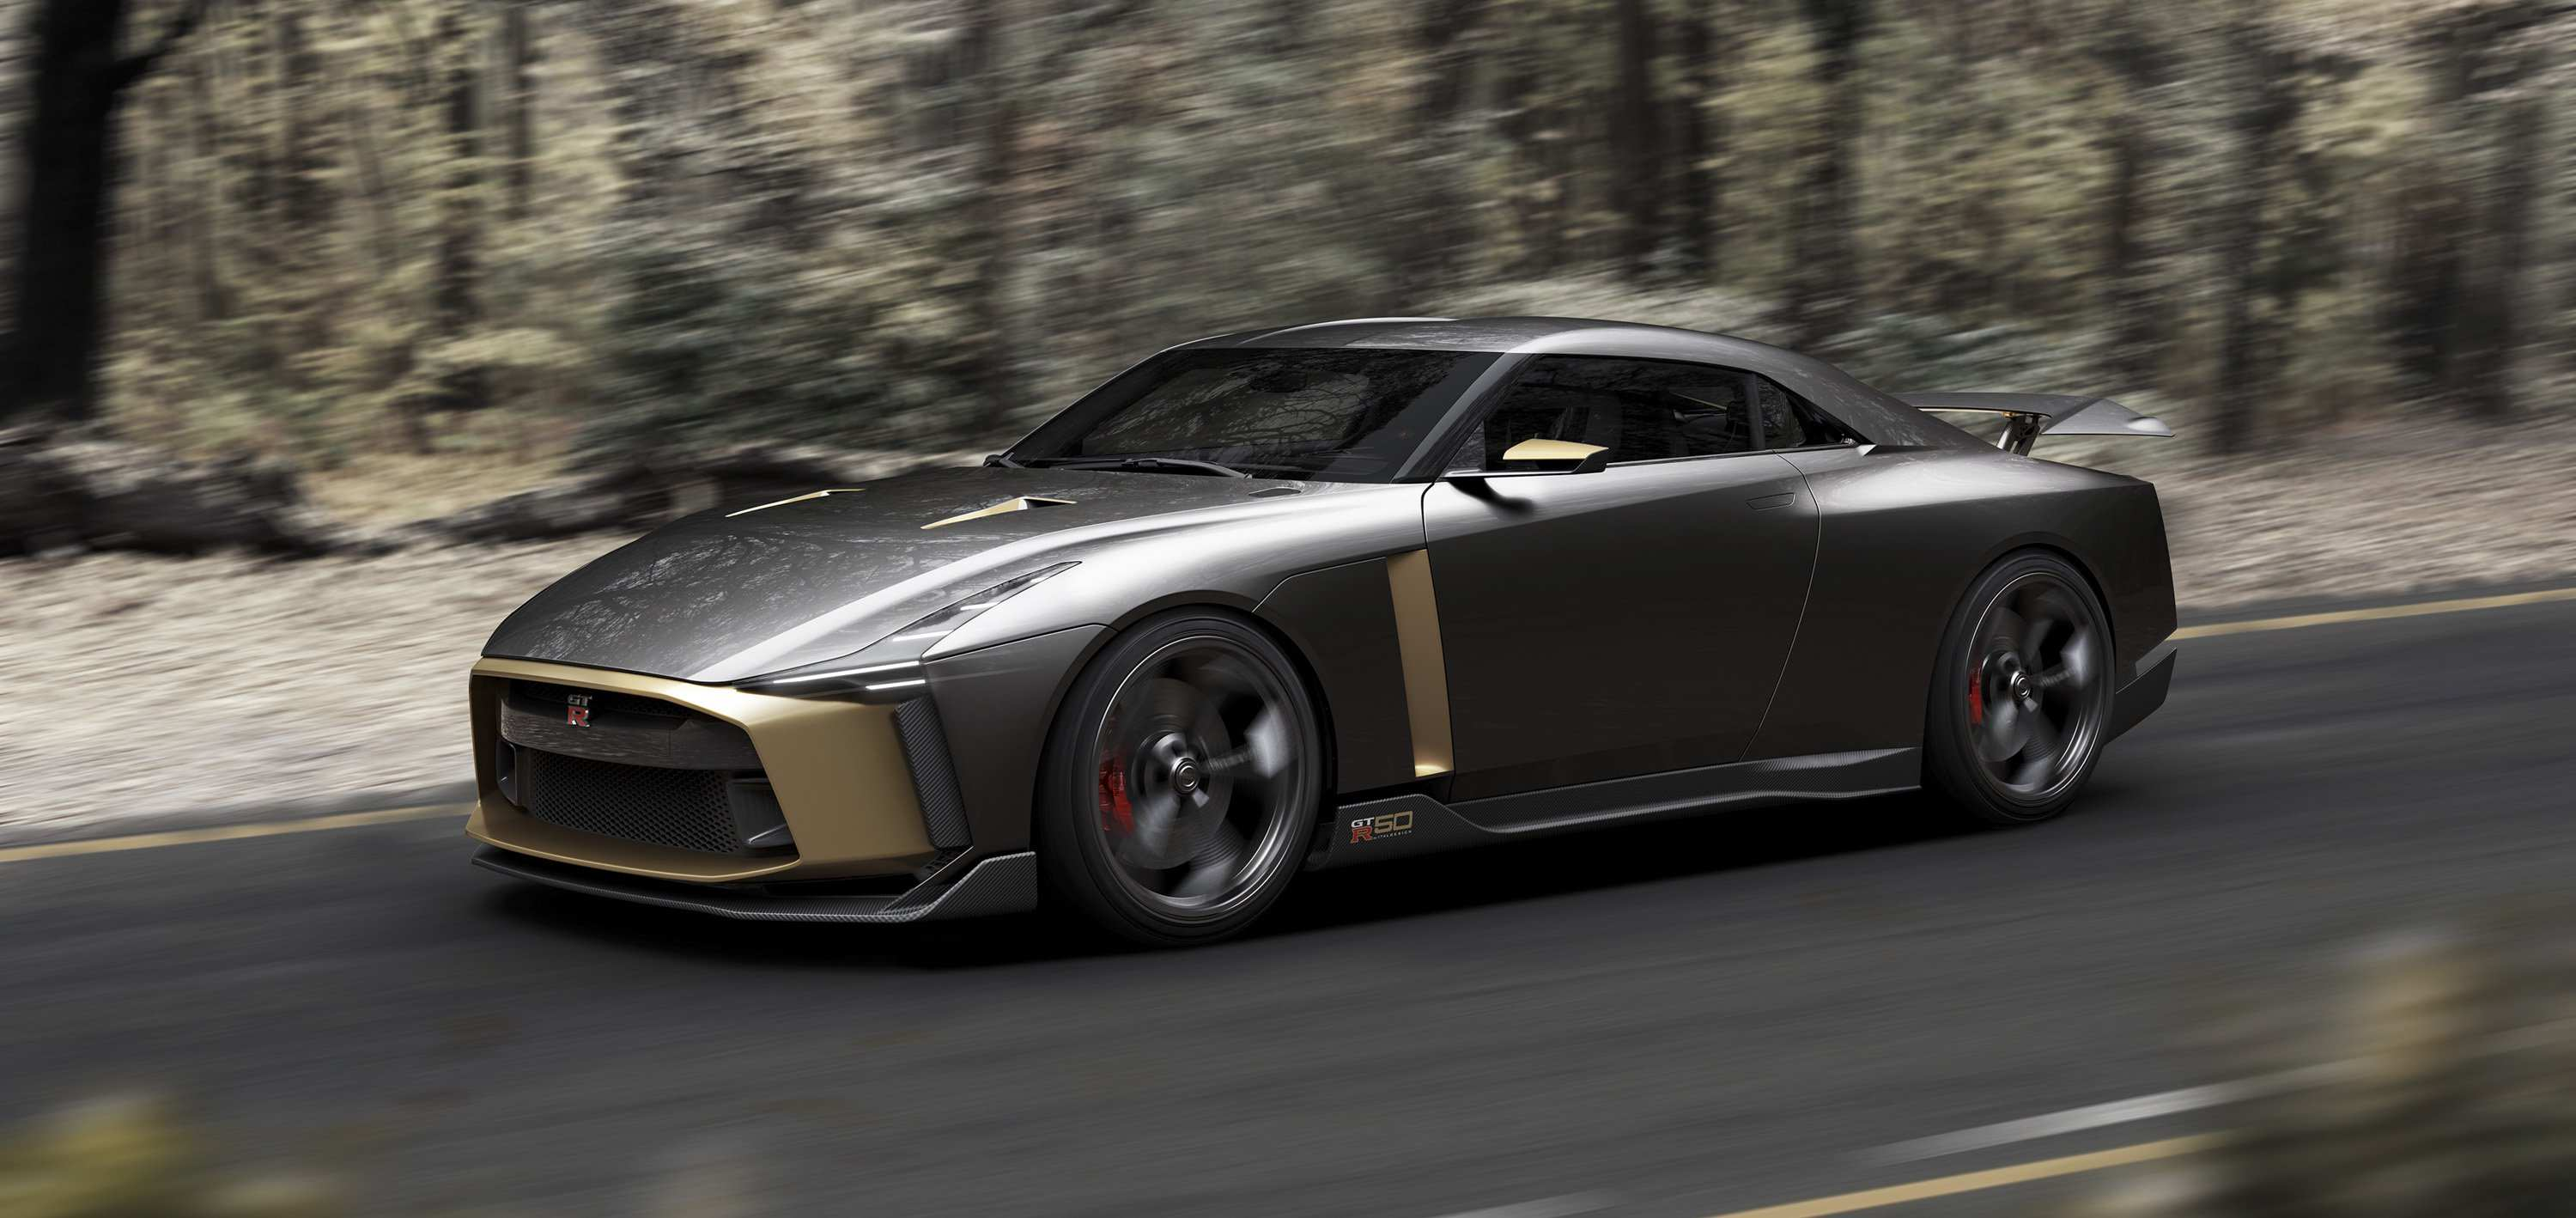 47 All New Nissan Gt R 36 2020 Price Spy Shoot with Nissan Gt R 36 2020 Price